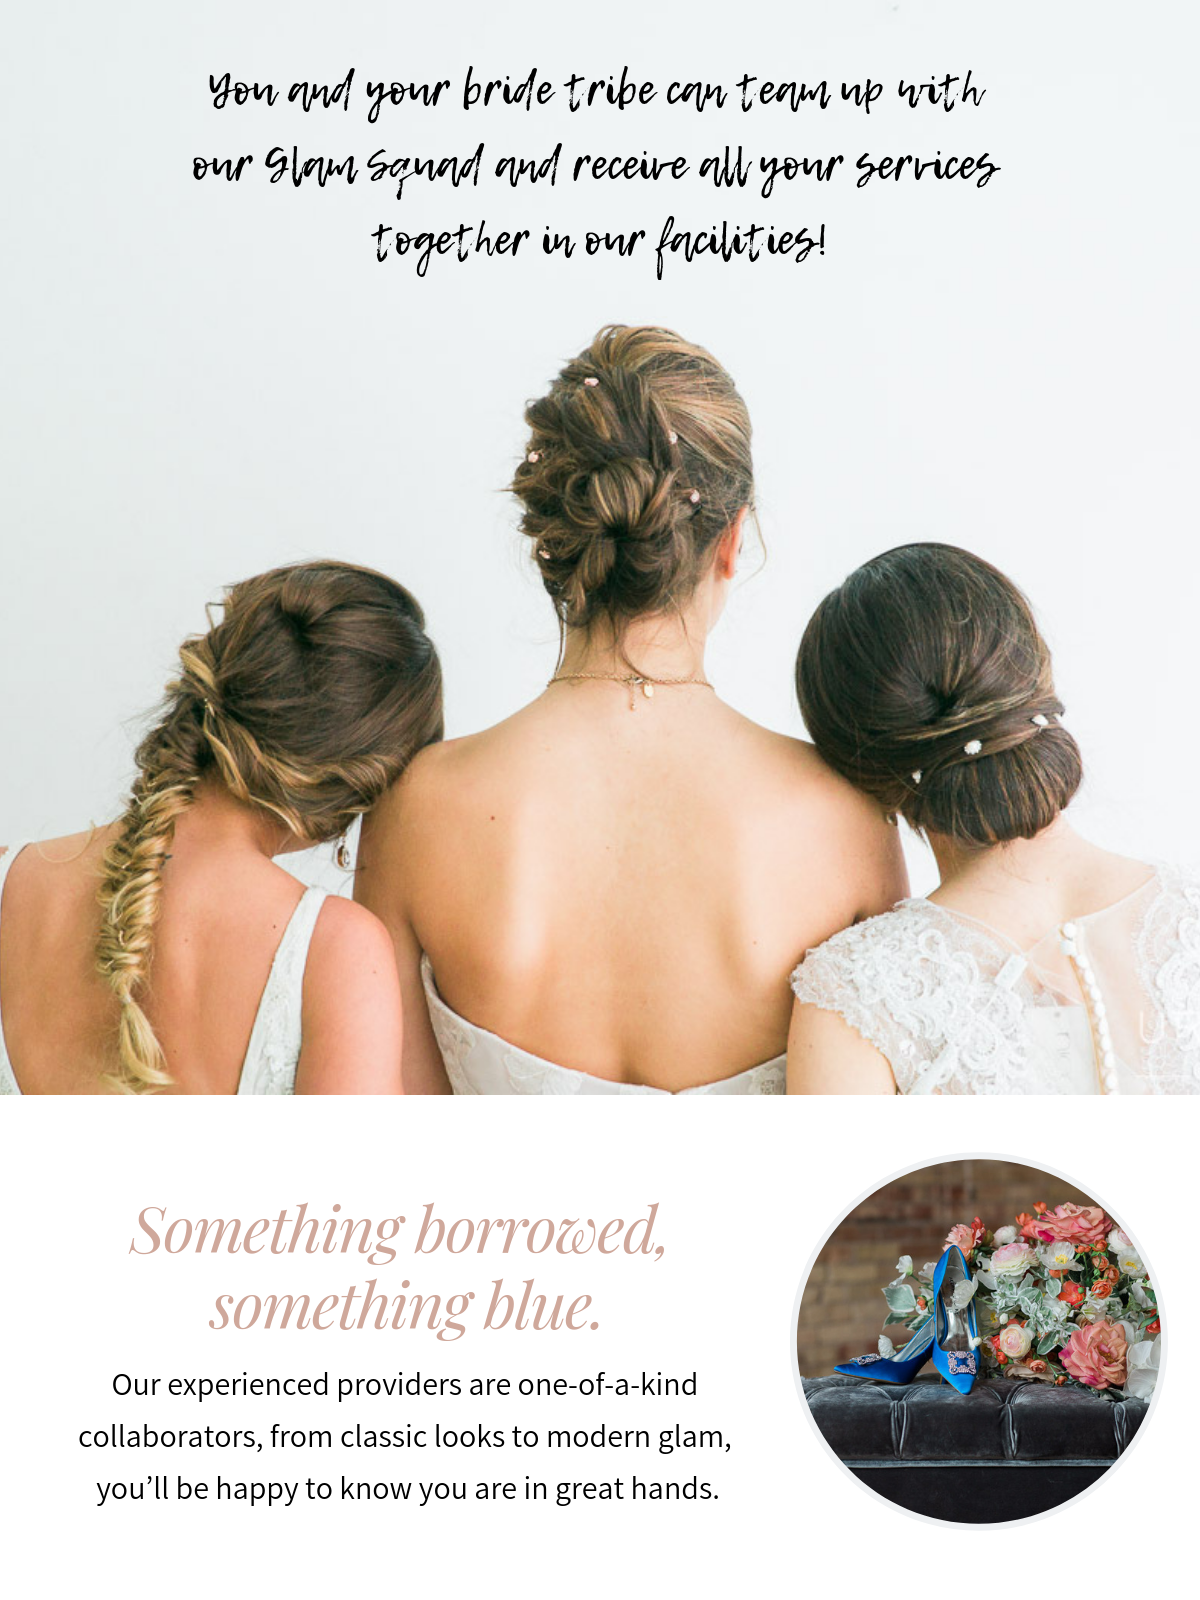 when you and your bride tribe team up with our glam squad and receive all your services together in our facilities!